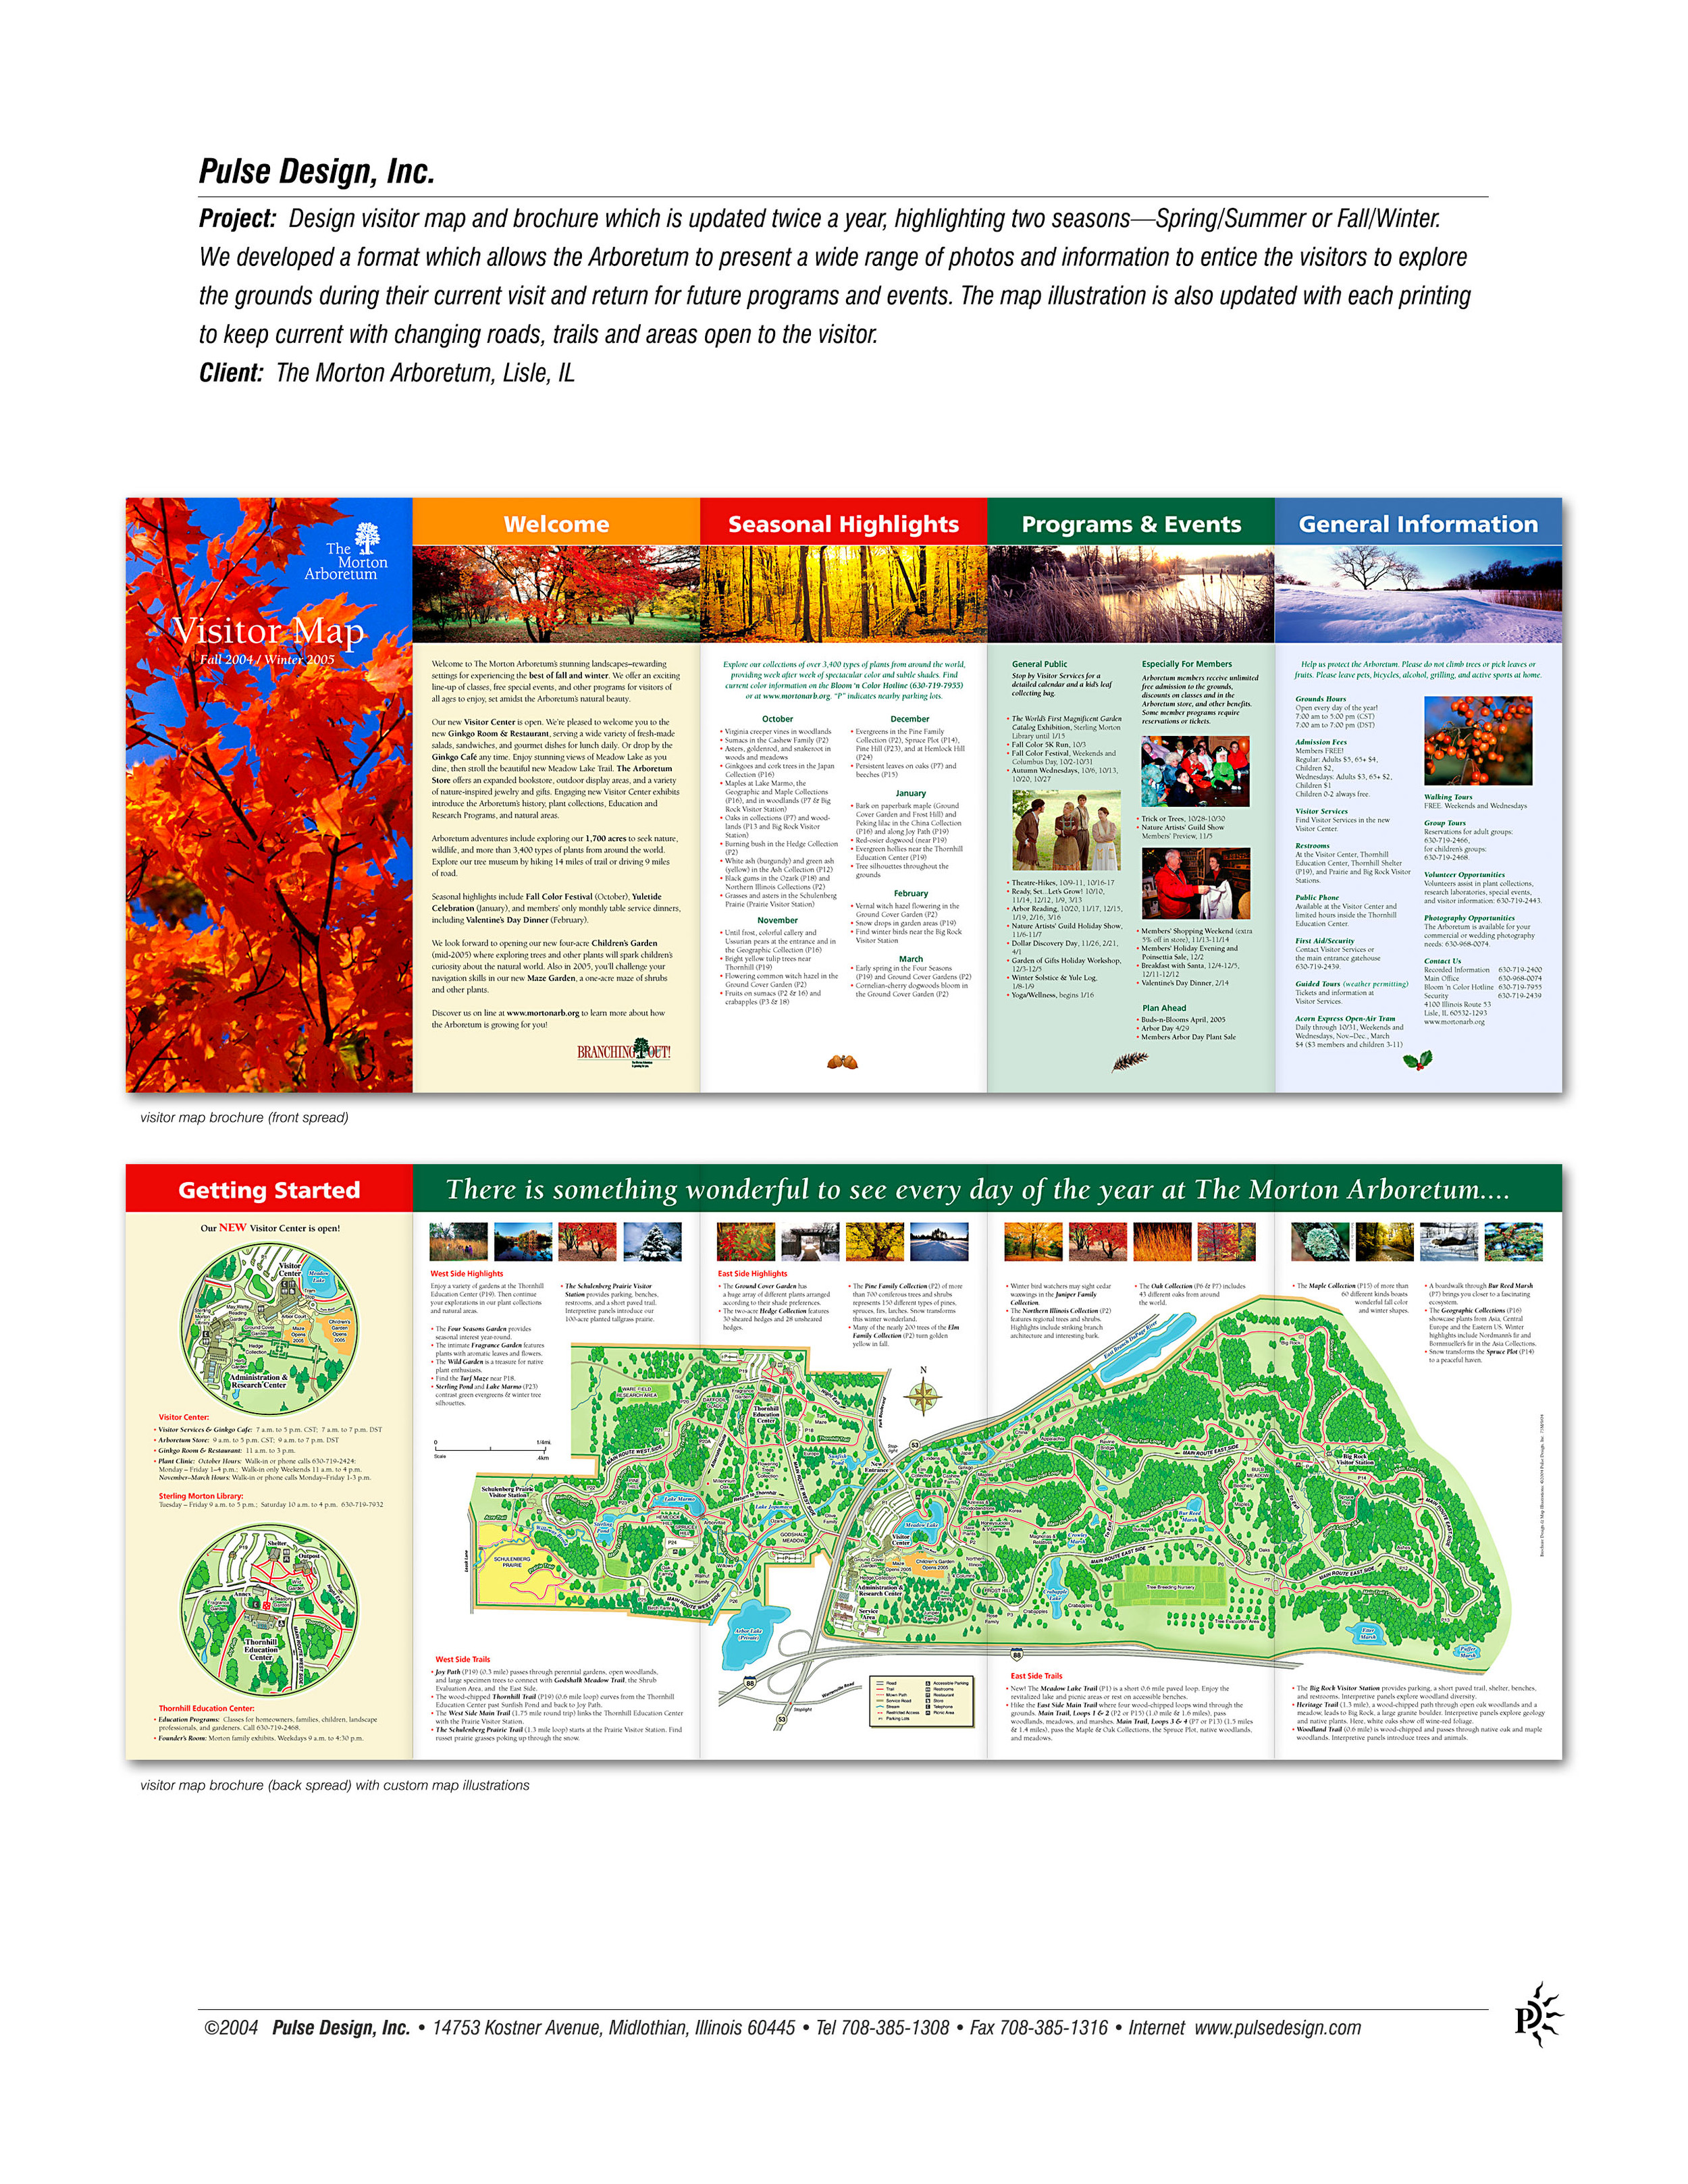 Morton-Arboretum-Visitor-Map-Fall-Pulse-Design-Inc.jpg